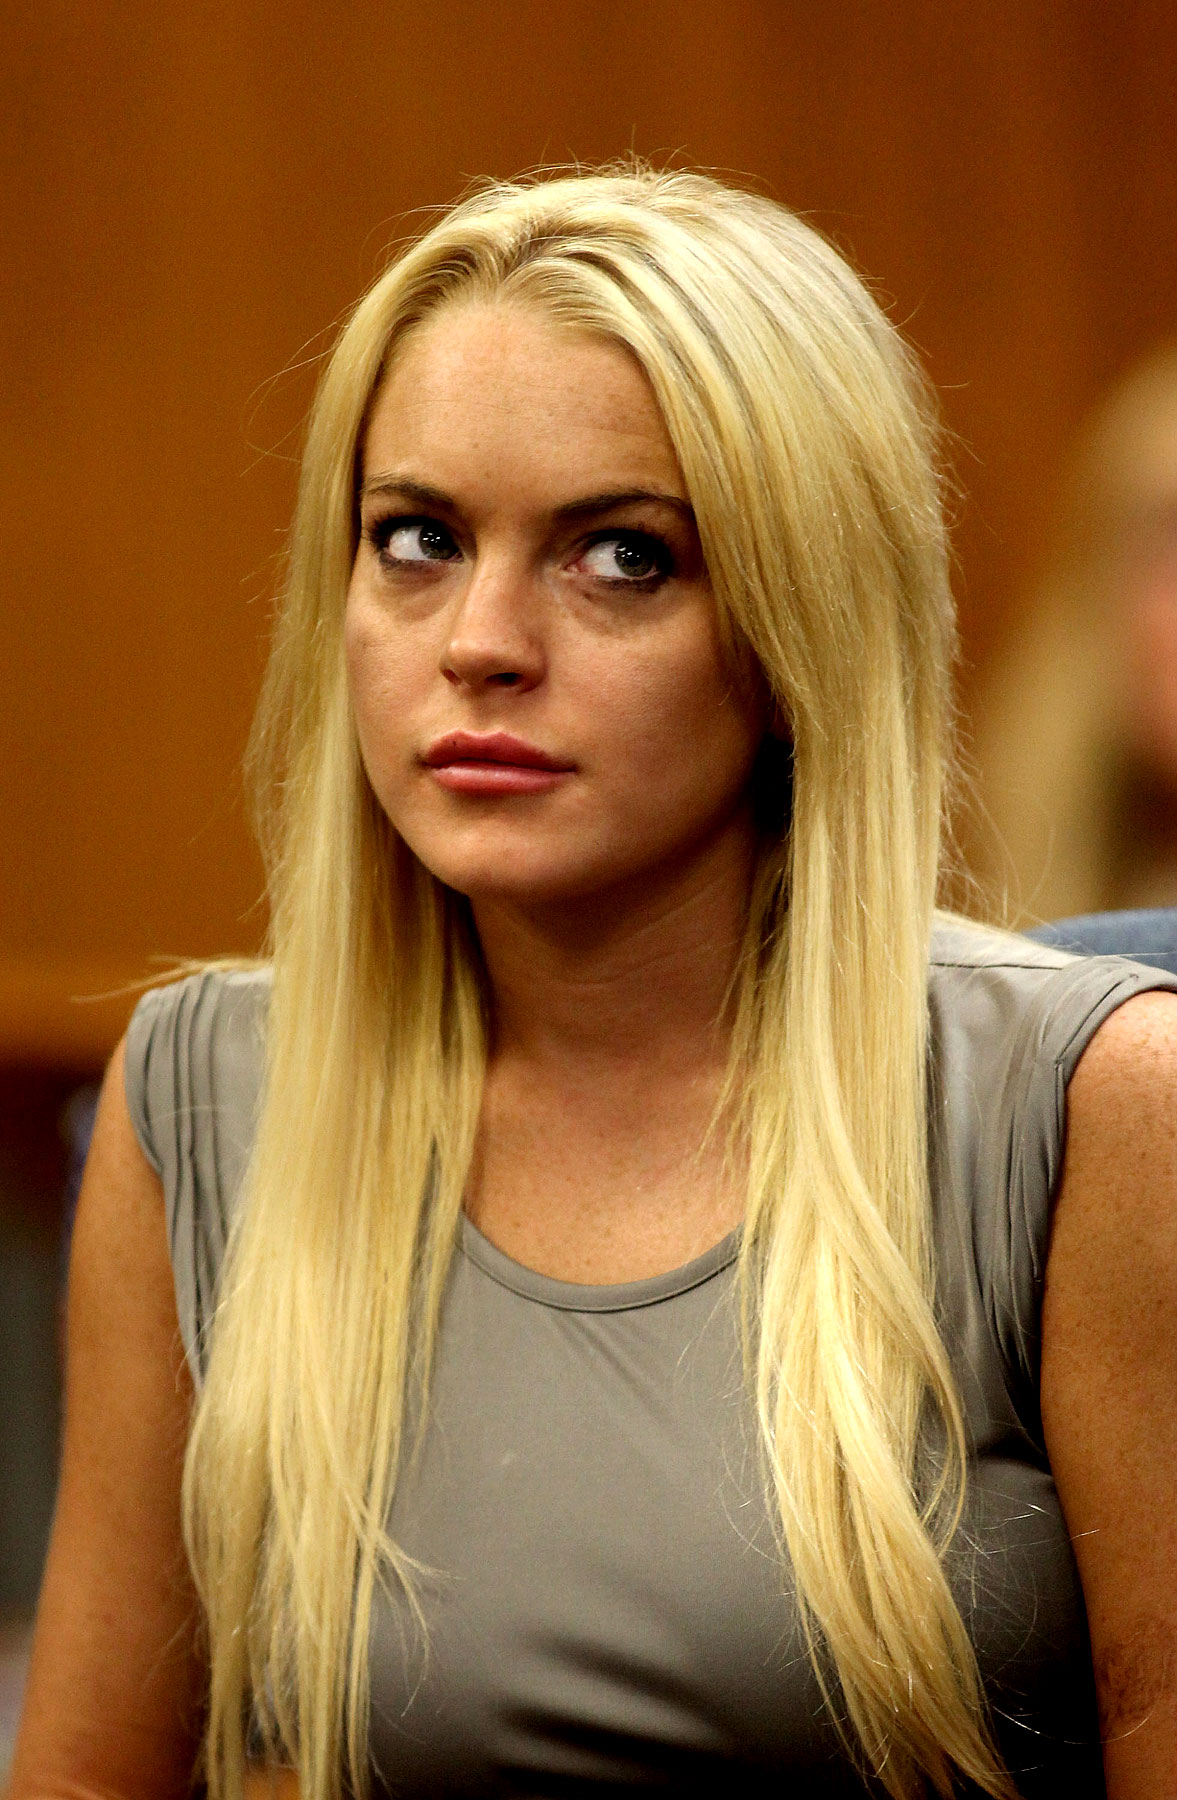 Lindsay Lohan Goes to Jail (PHOTOS)